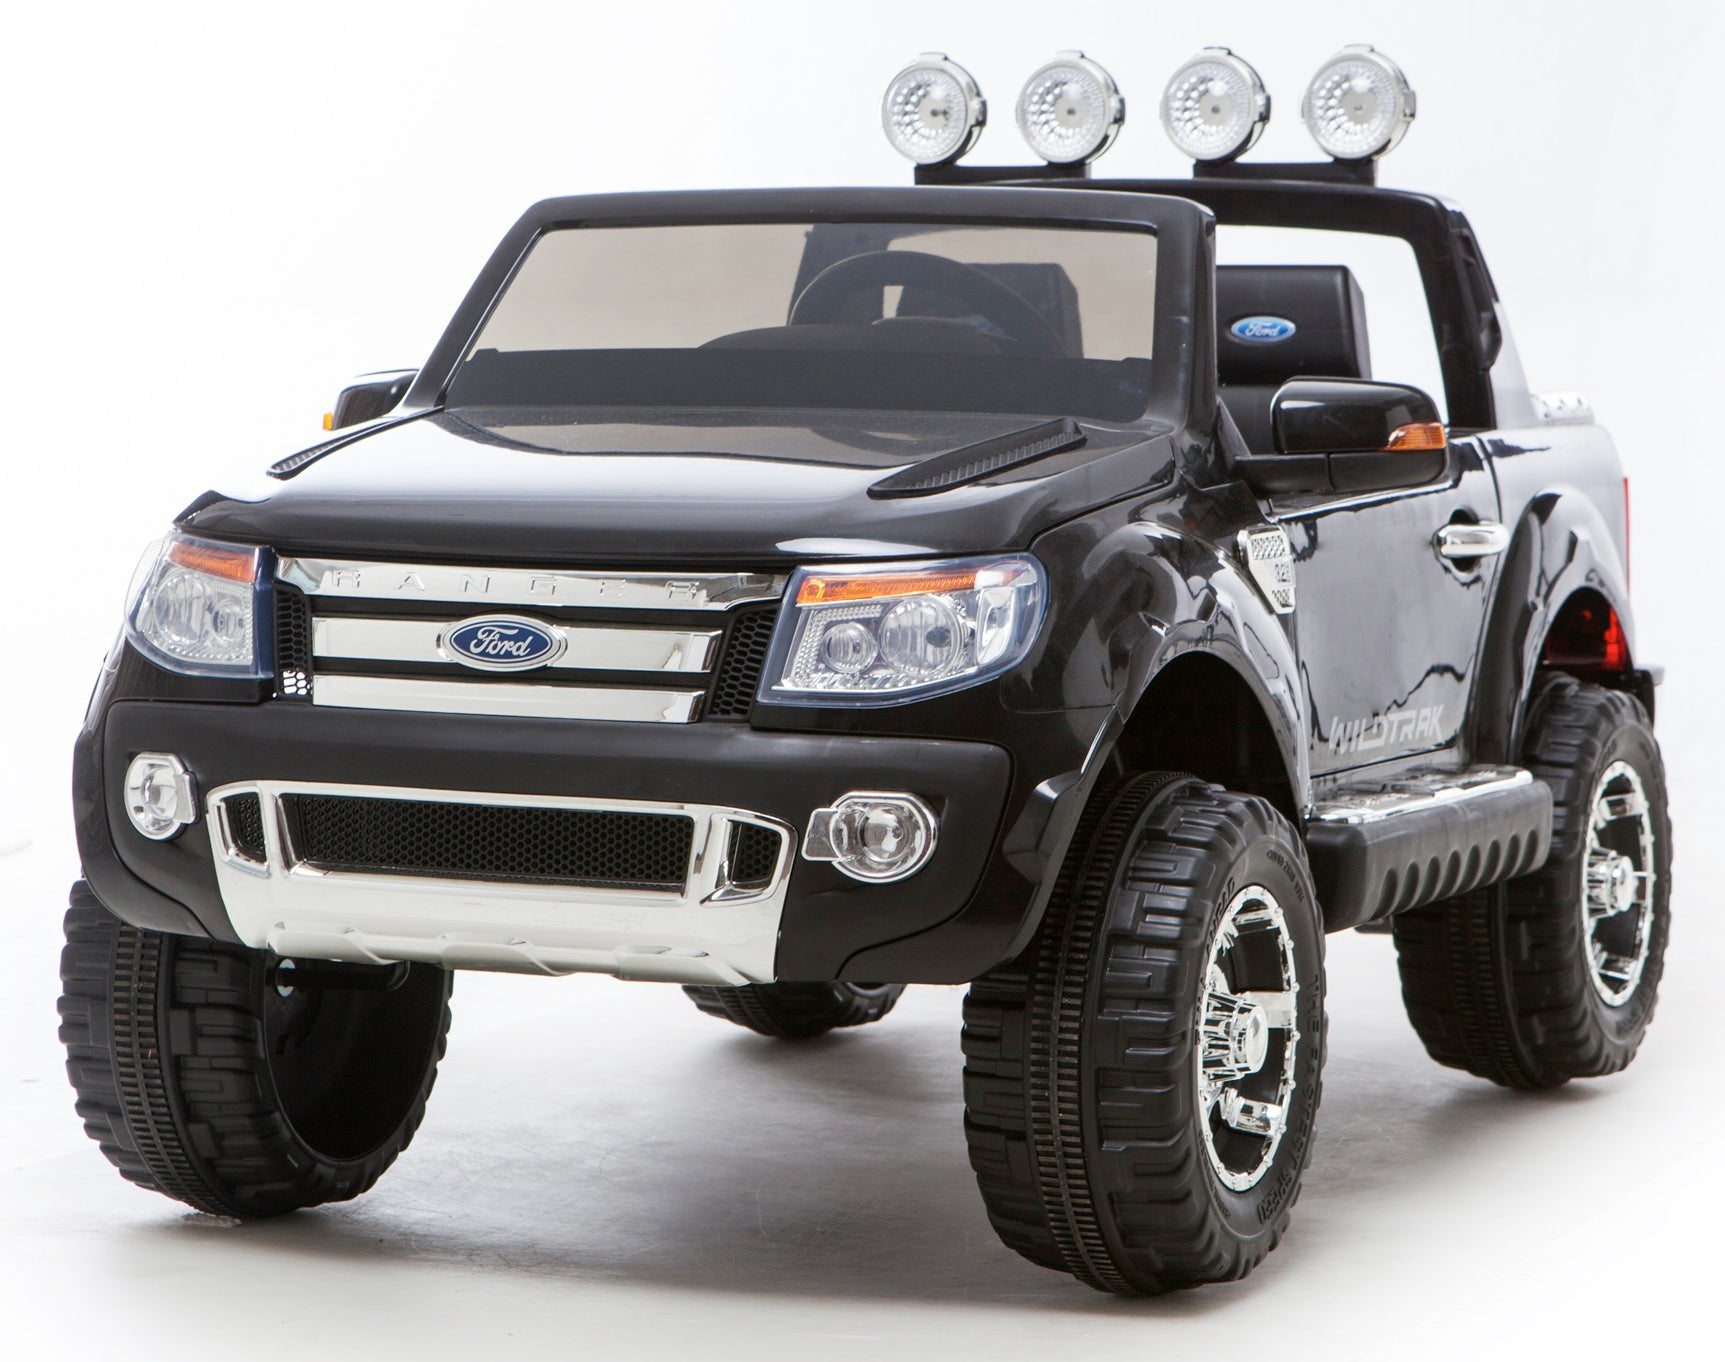 ford ranger 4x4 ford ranger 2 2 xls 4x4 automatic 2016 review ford ranger 2016 rhino 4x4. Black Bedroom Furniture Sets. Home Design Ideas